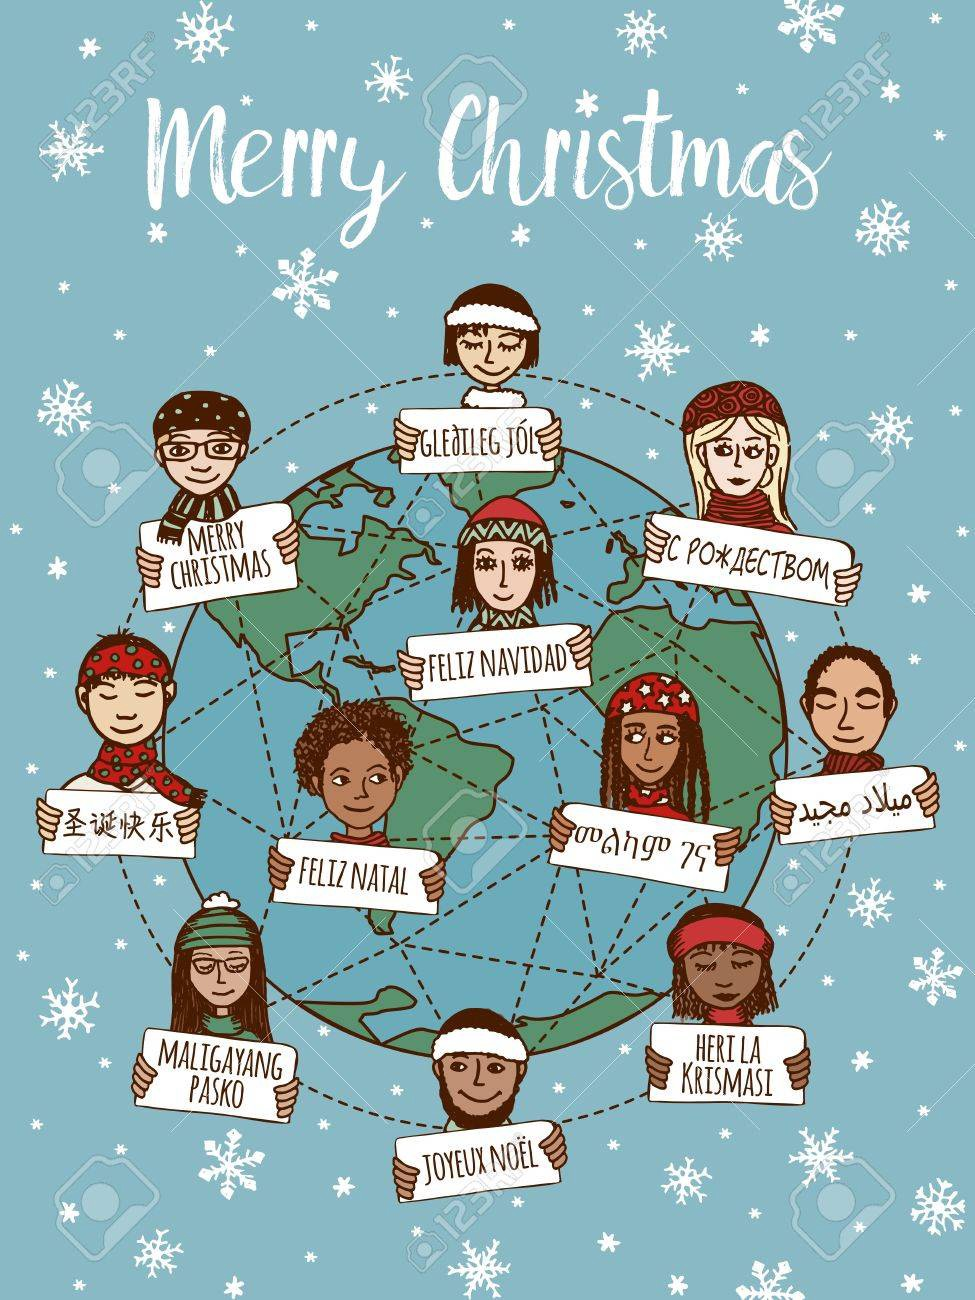 Merry Christmas Different Languages.Merry Christmas In 76 Different Languages Cole